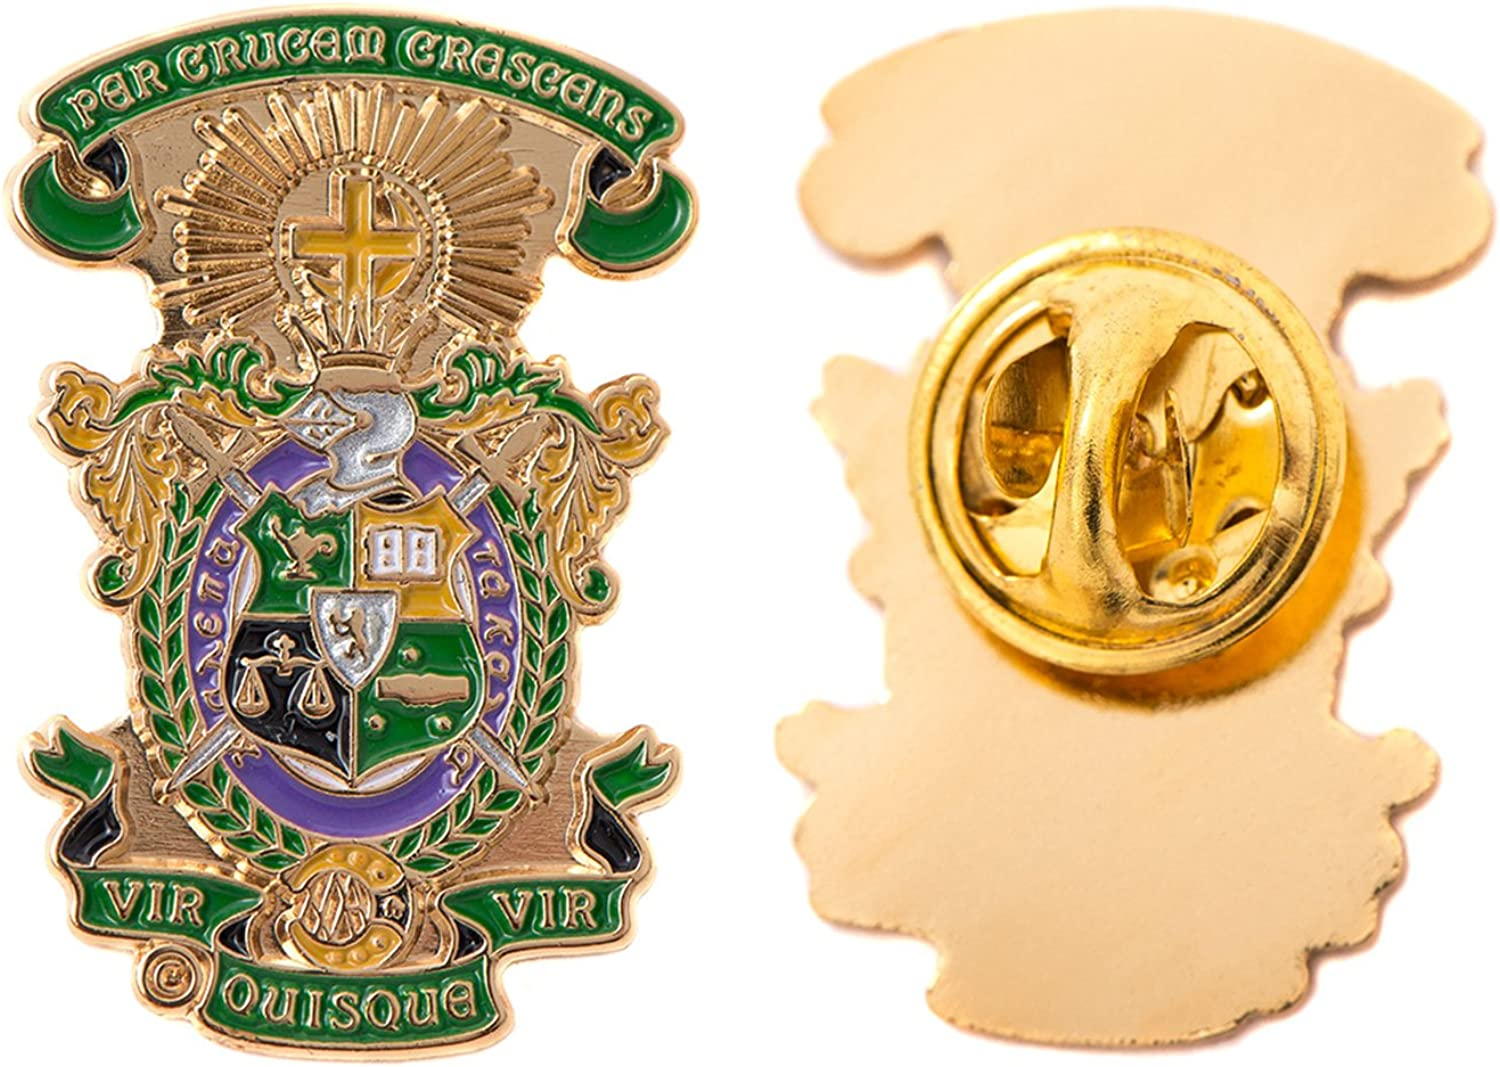 Desert Cactus Lambda Chi Alpha Fraternity Lapel Enamel Greek Formal Wear Blazer Jacket Lambda Chi (Crest Pin)